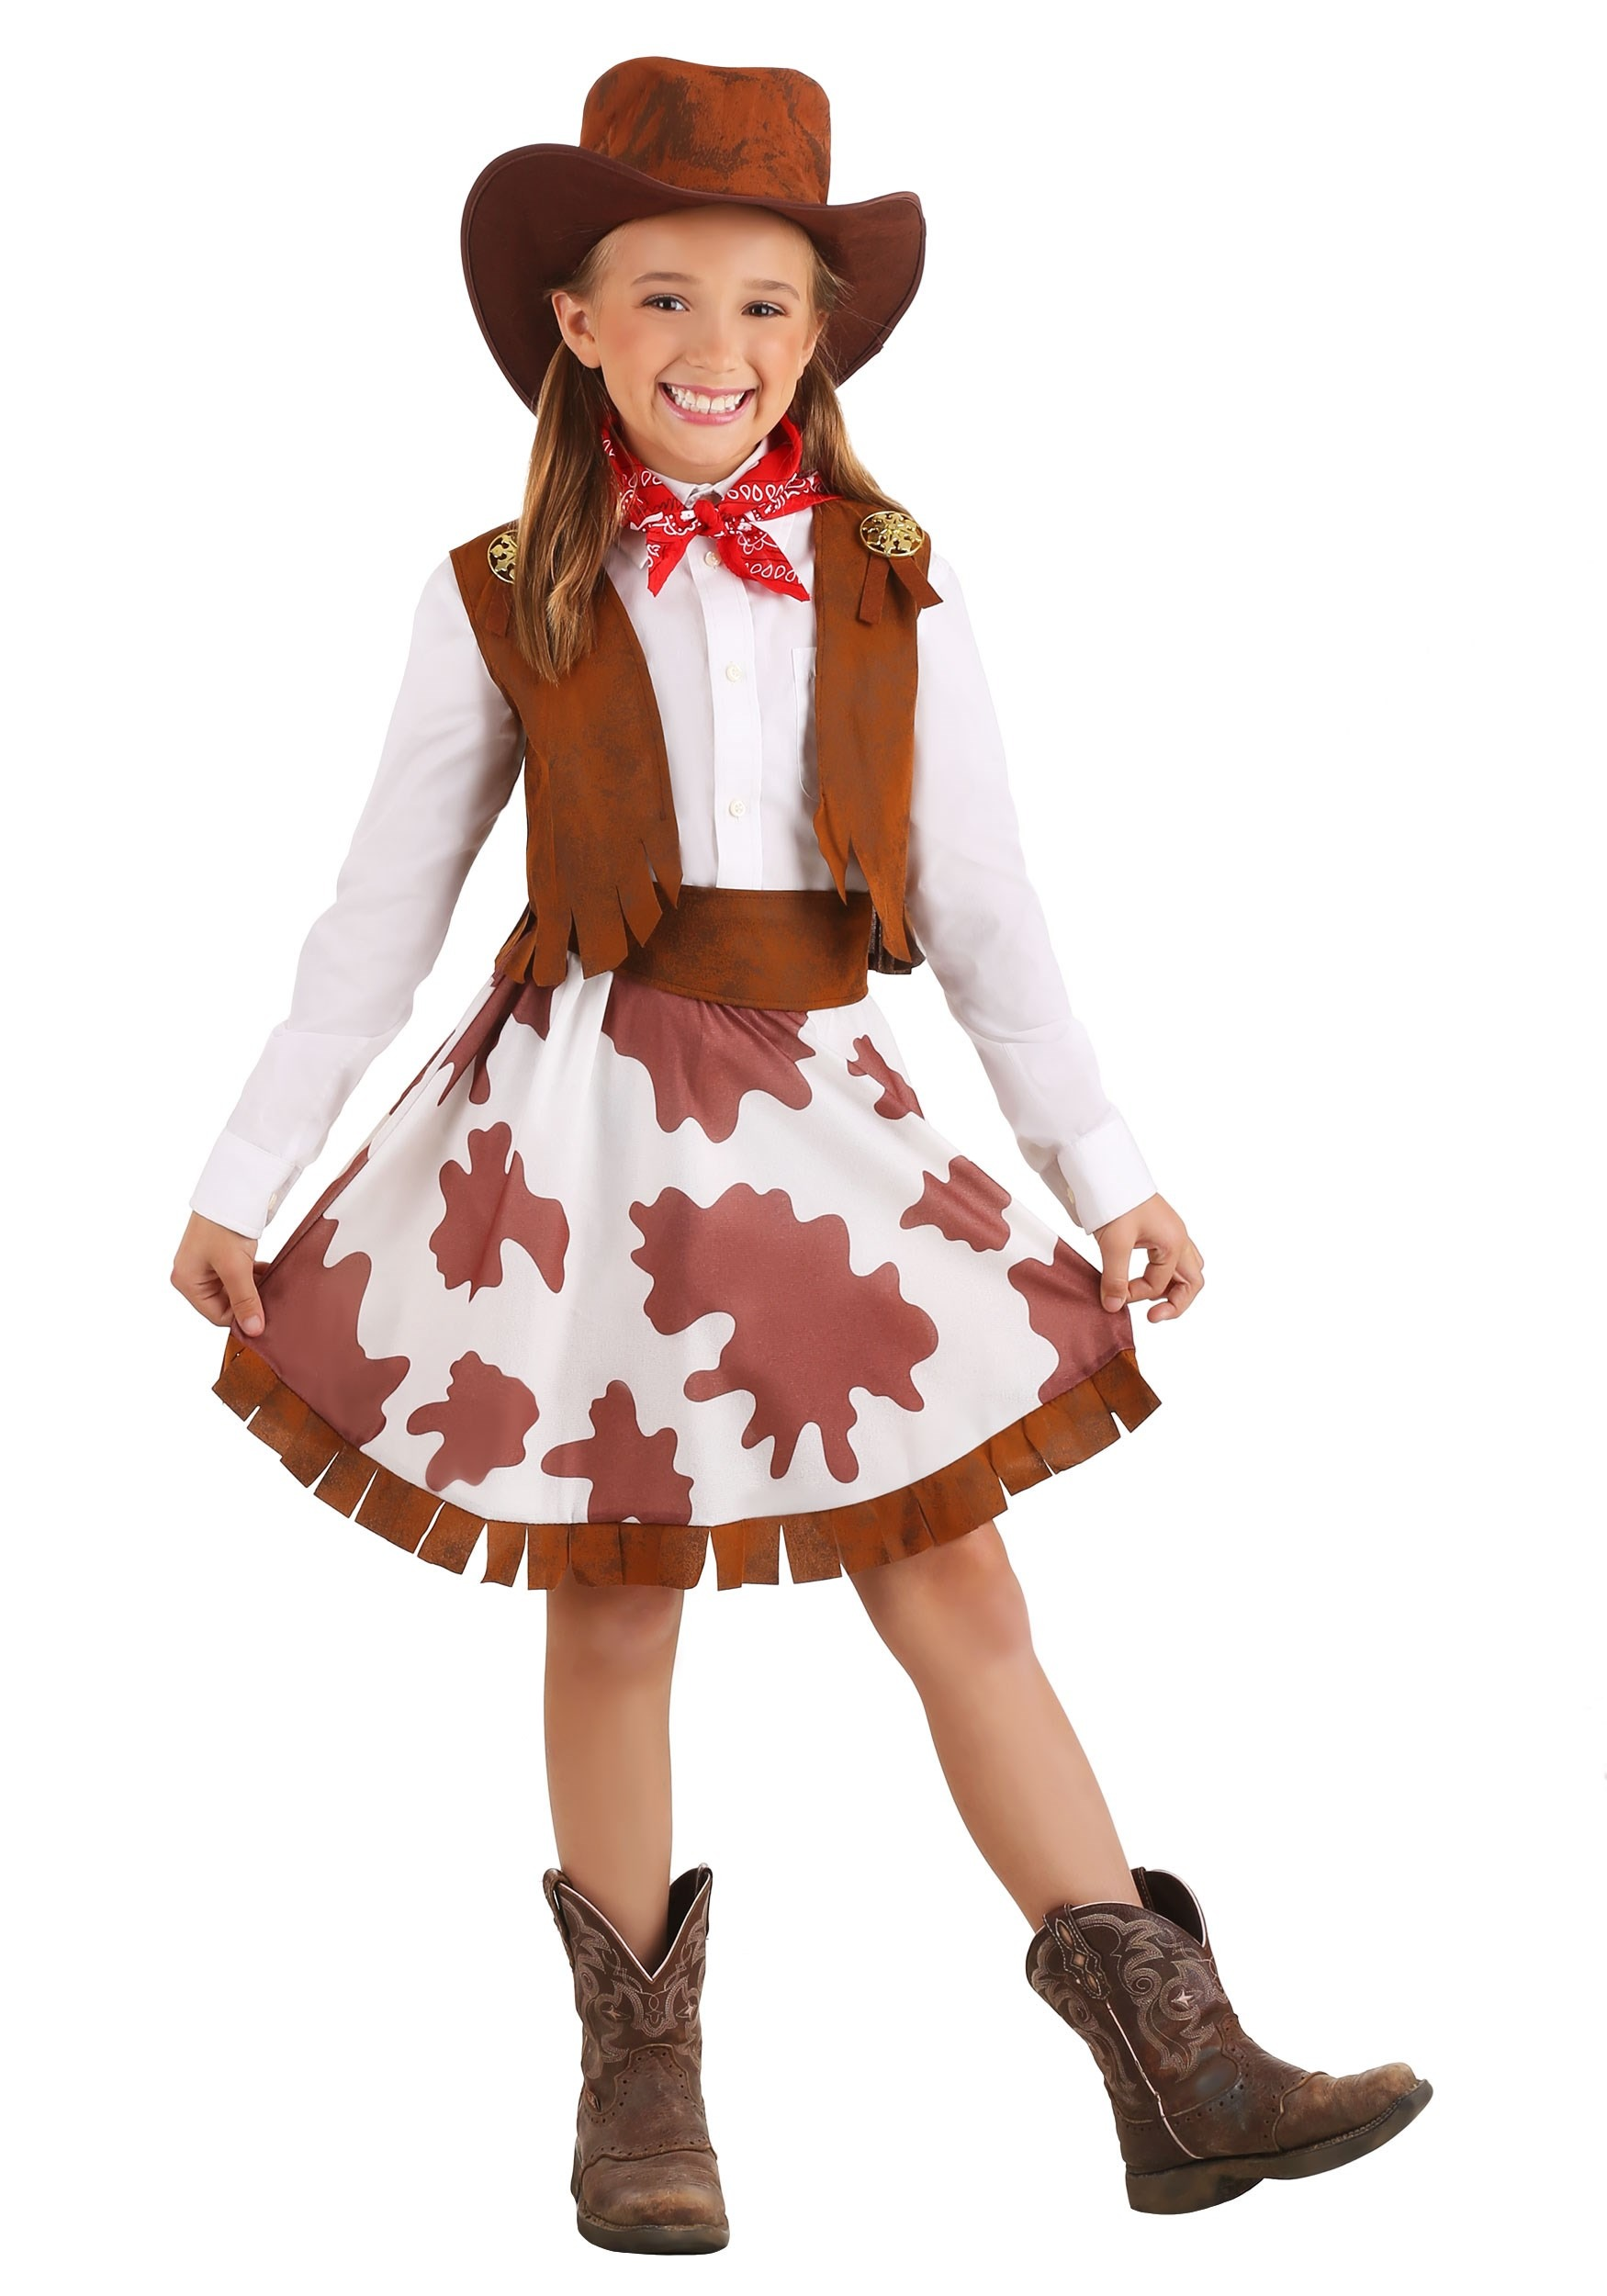 Sweetheart Cowgirl Costume for Girls